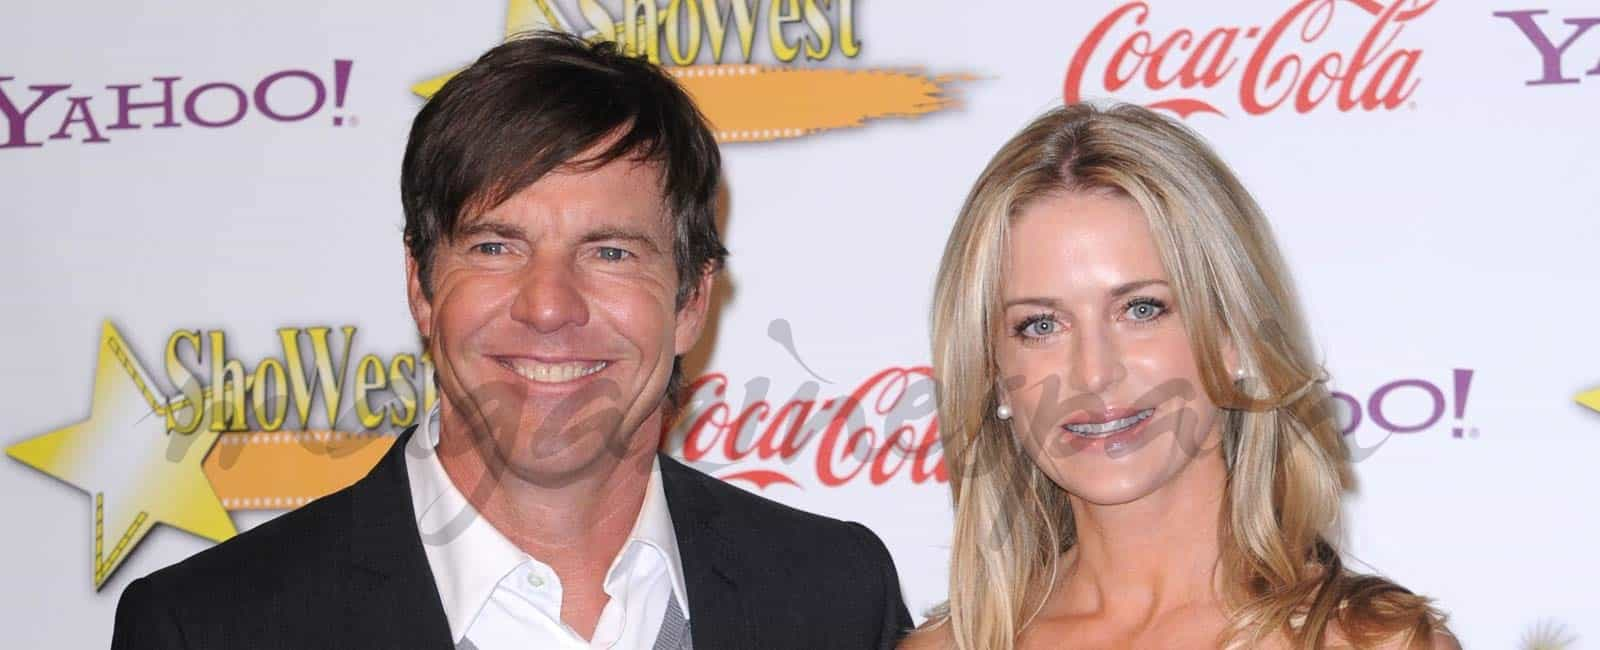 Dennis Quaid y Kimberly Buffington se divorcian